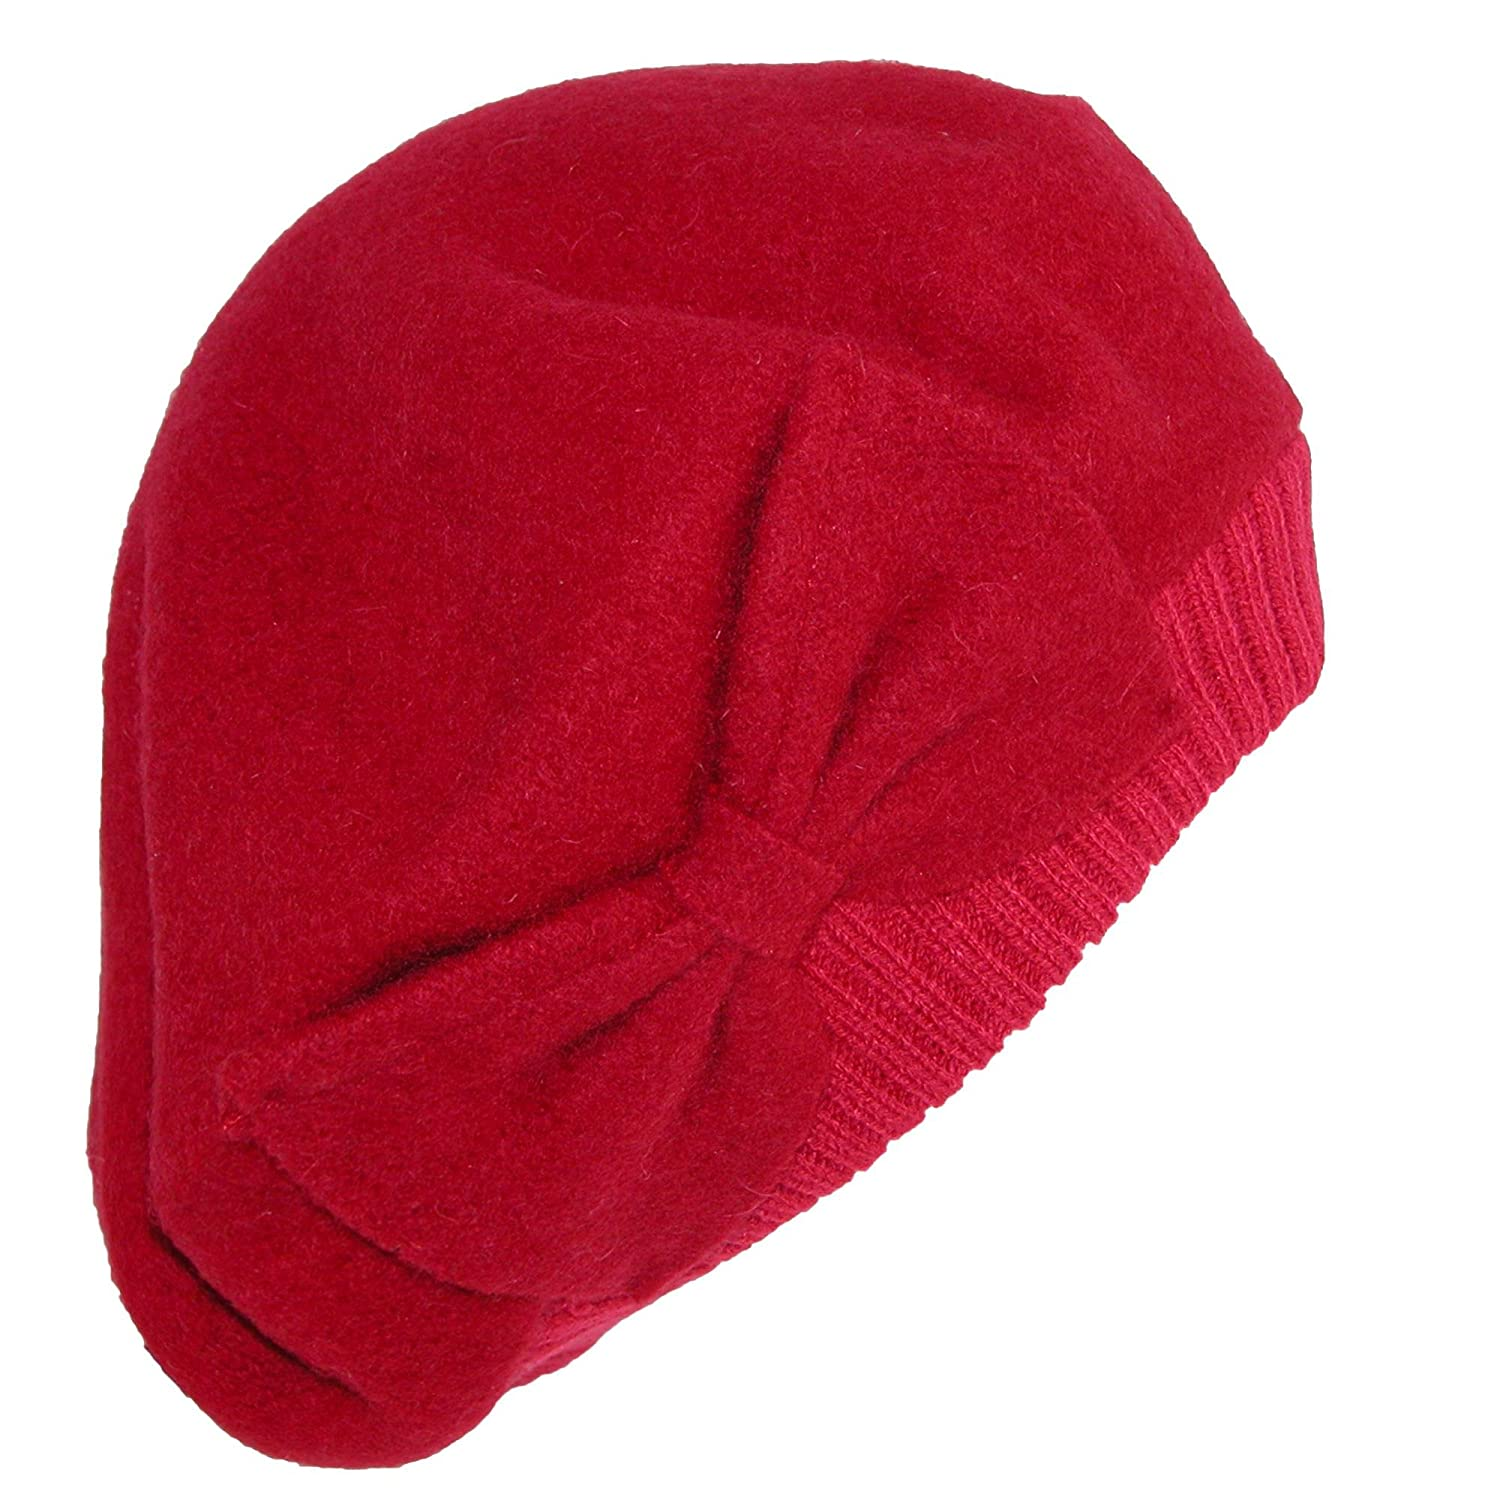 Pia Rossini Women's Wool Slouchy Beret with Oversized Bow Red